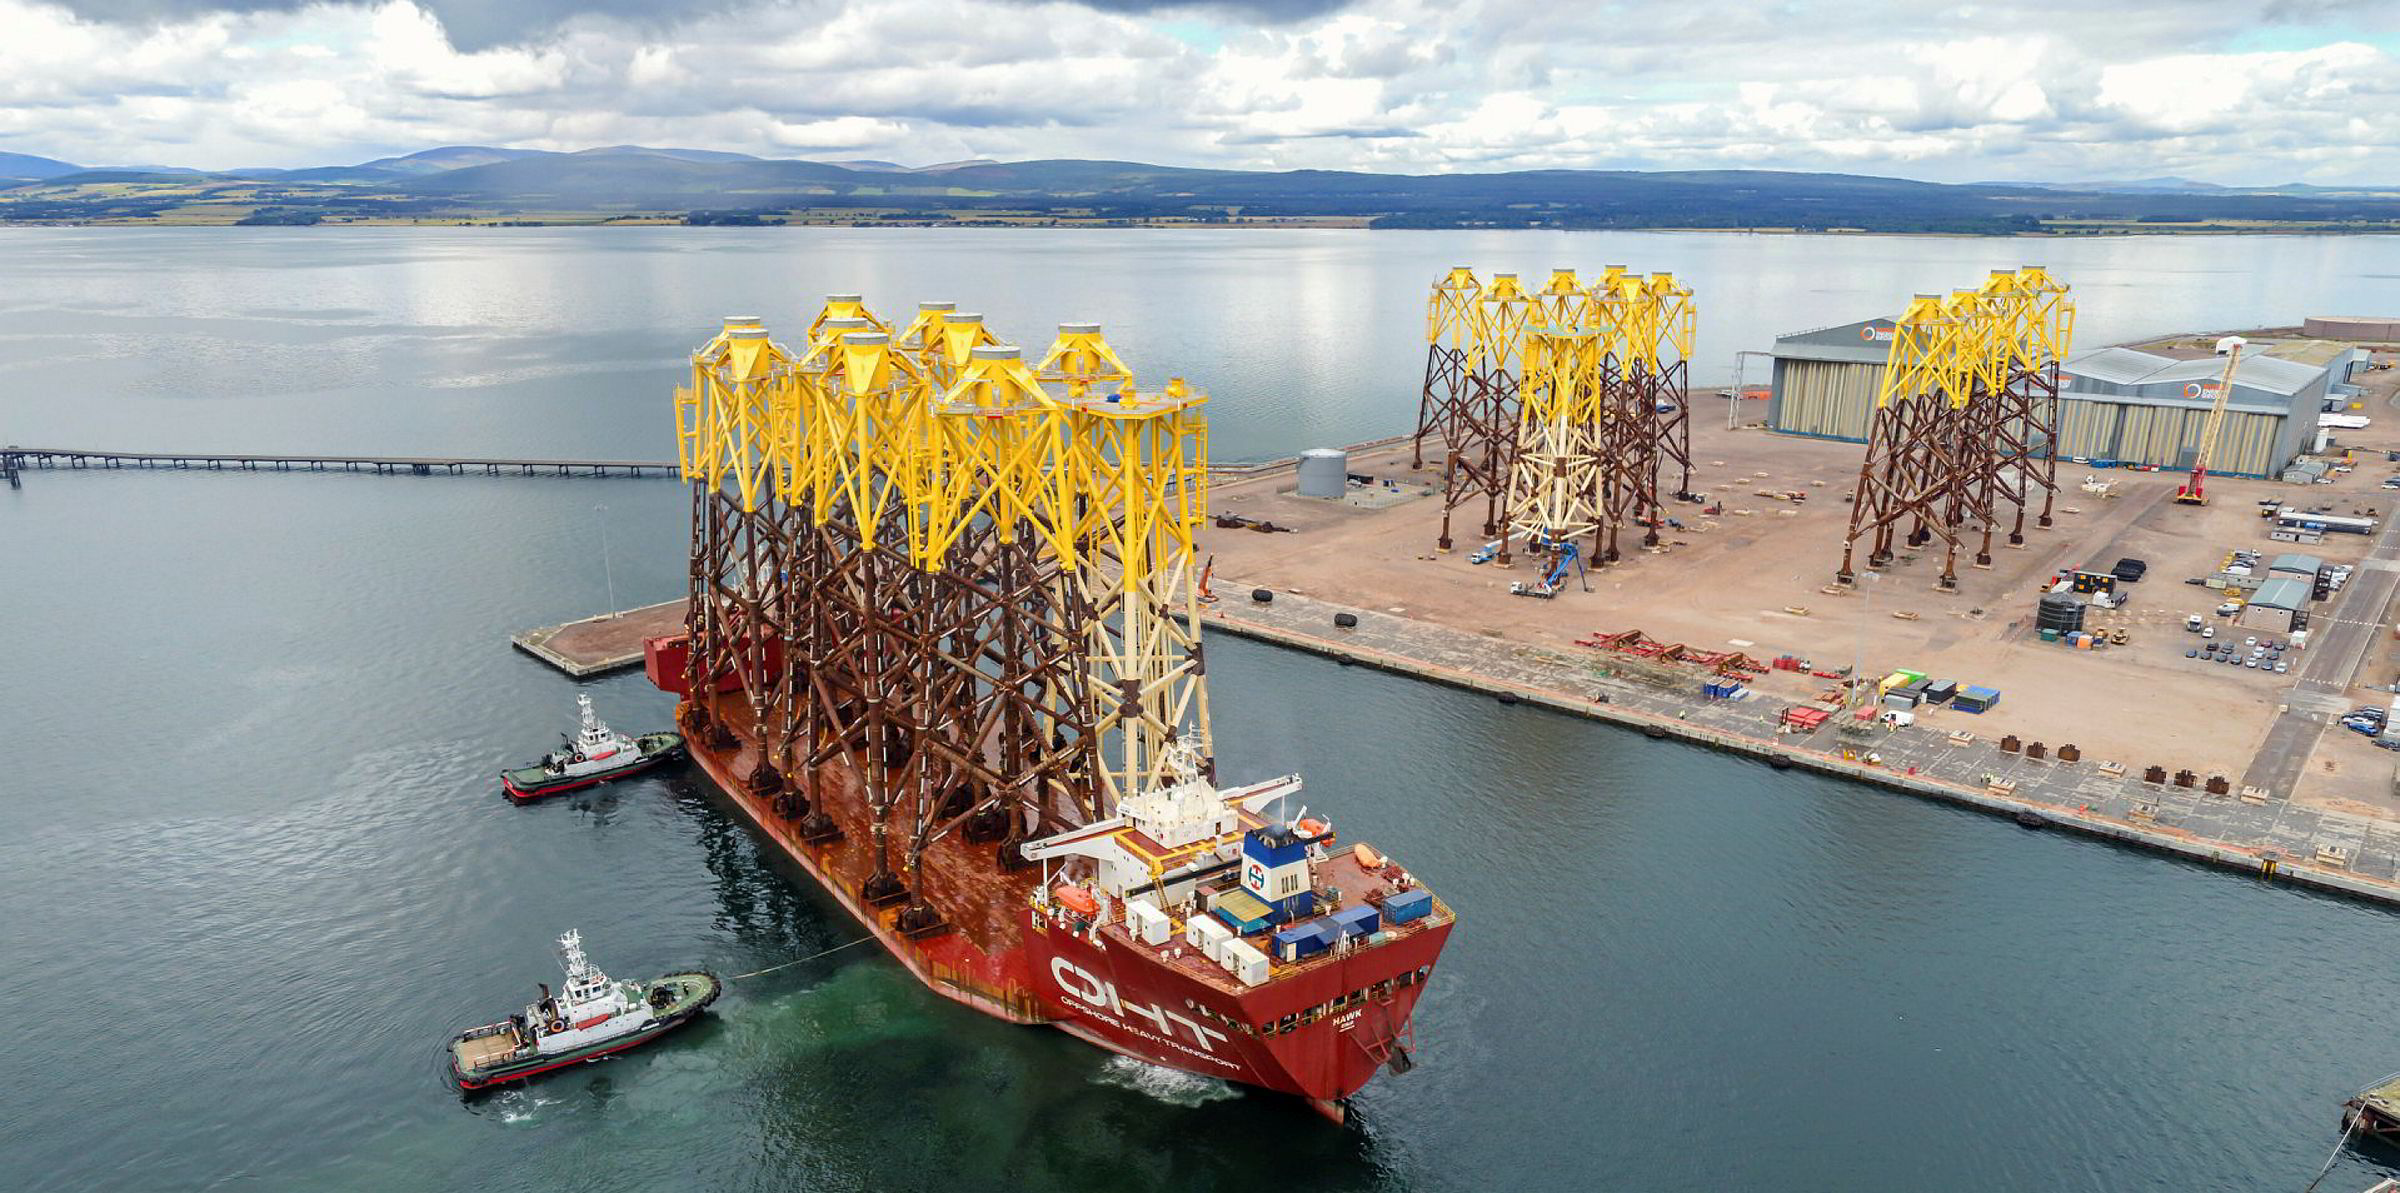 Spiegel De4 Significant Risk' Scotland's Ports Won't Be Fit For Offshore Wind Build | Recharge